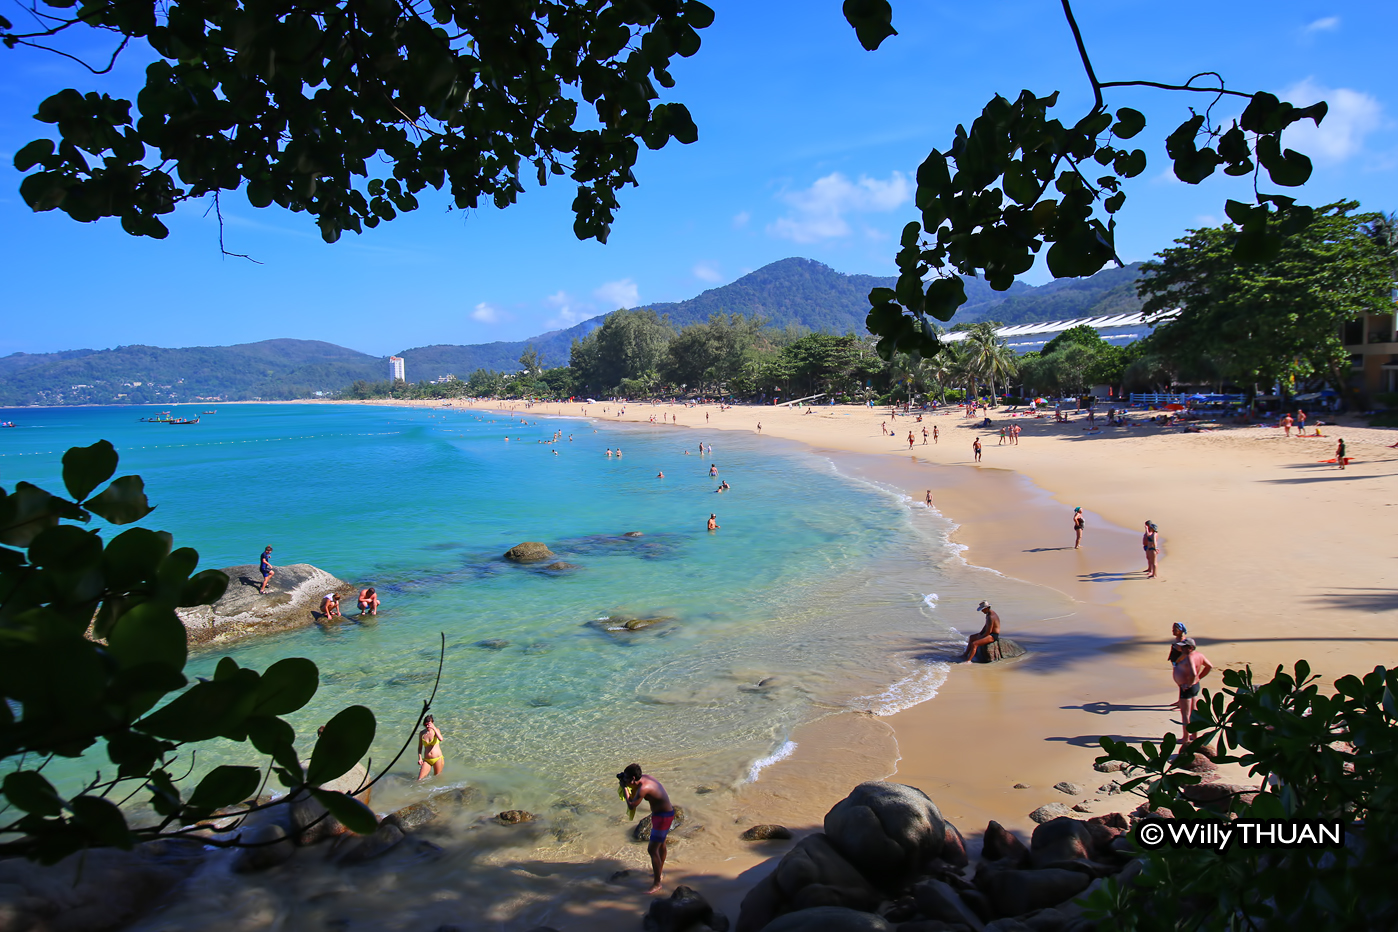 Karon Beach, the third most popular beach in Phuket